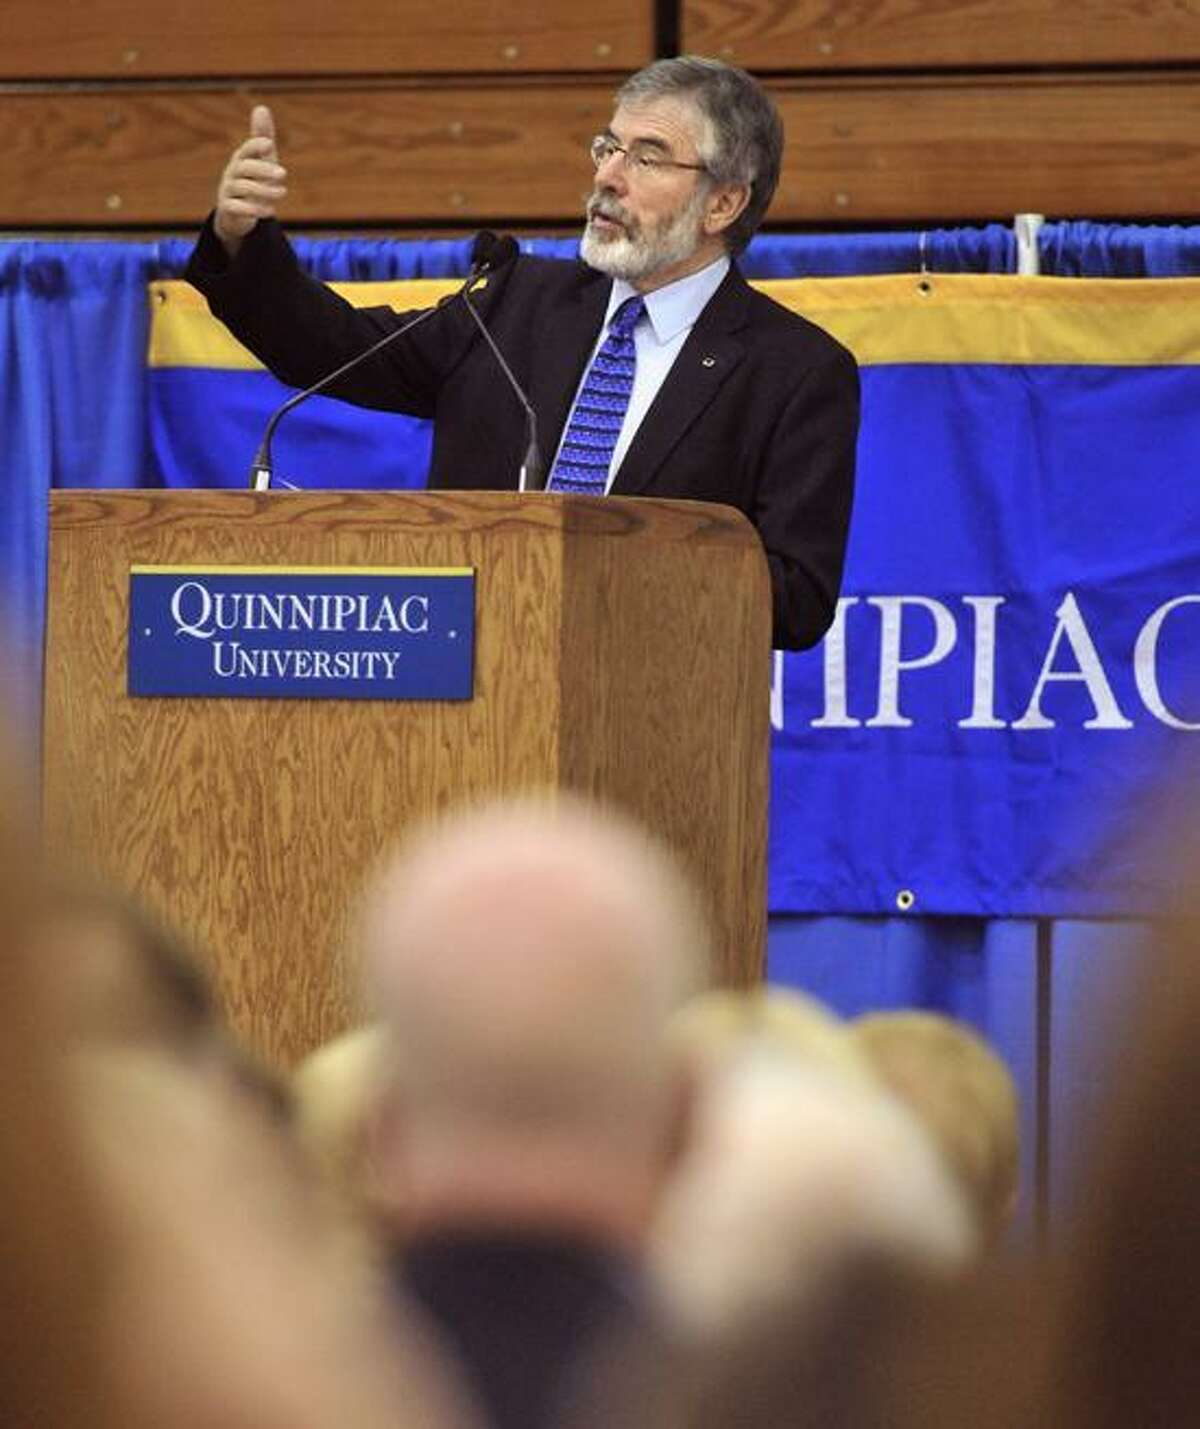 Gerry Adams, president of Sinn Fein, the Irish National Political Party, delivers his lecture to a large crowd at Quinnipiac University. Photo Peter Casolino/New Haven Register